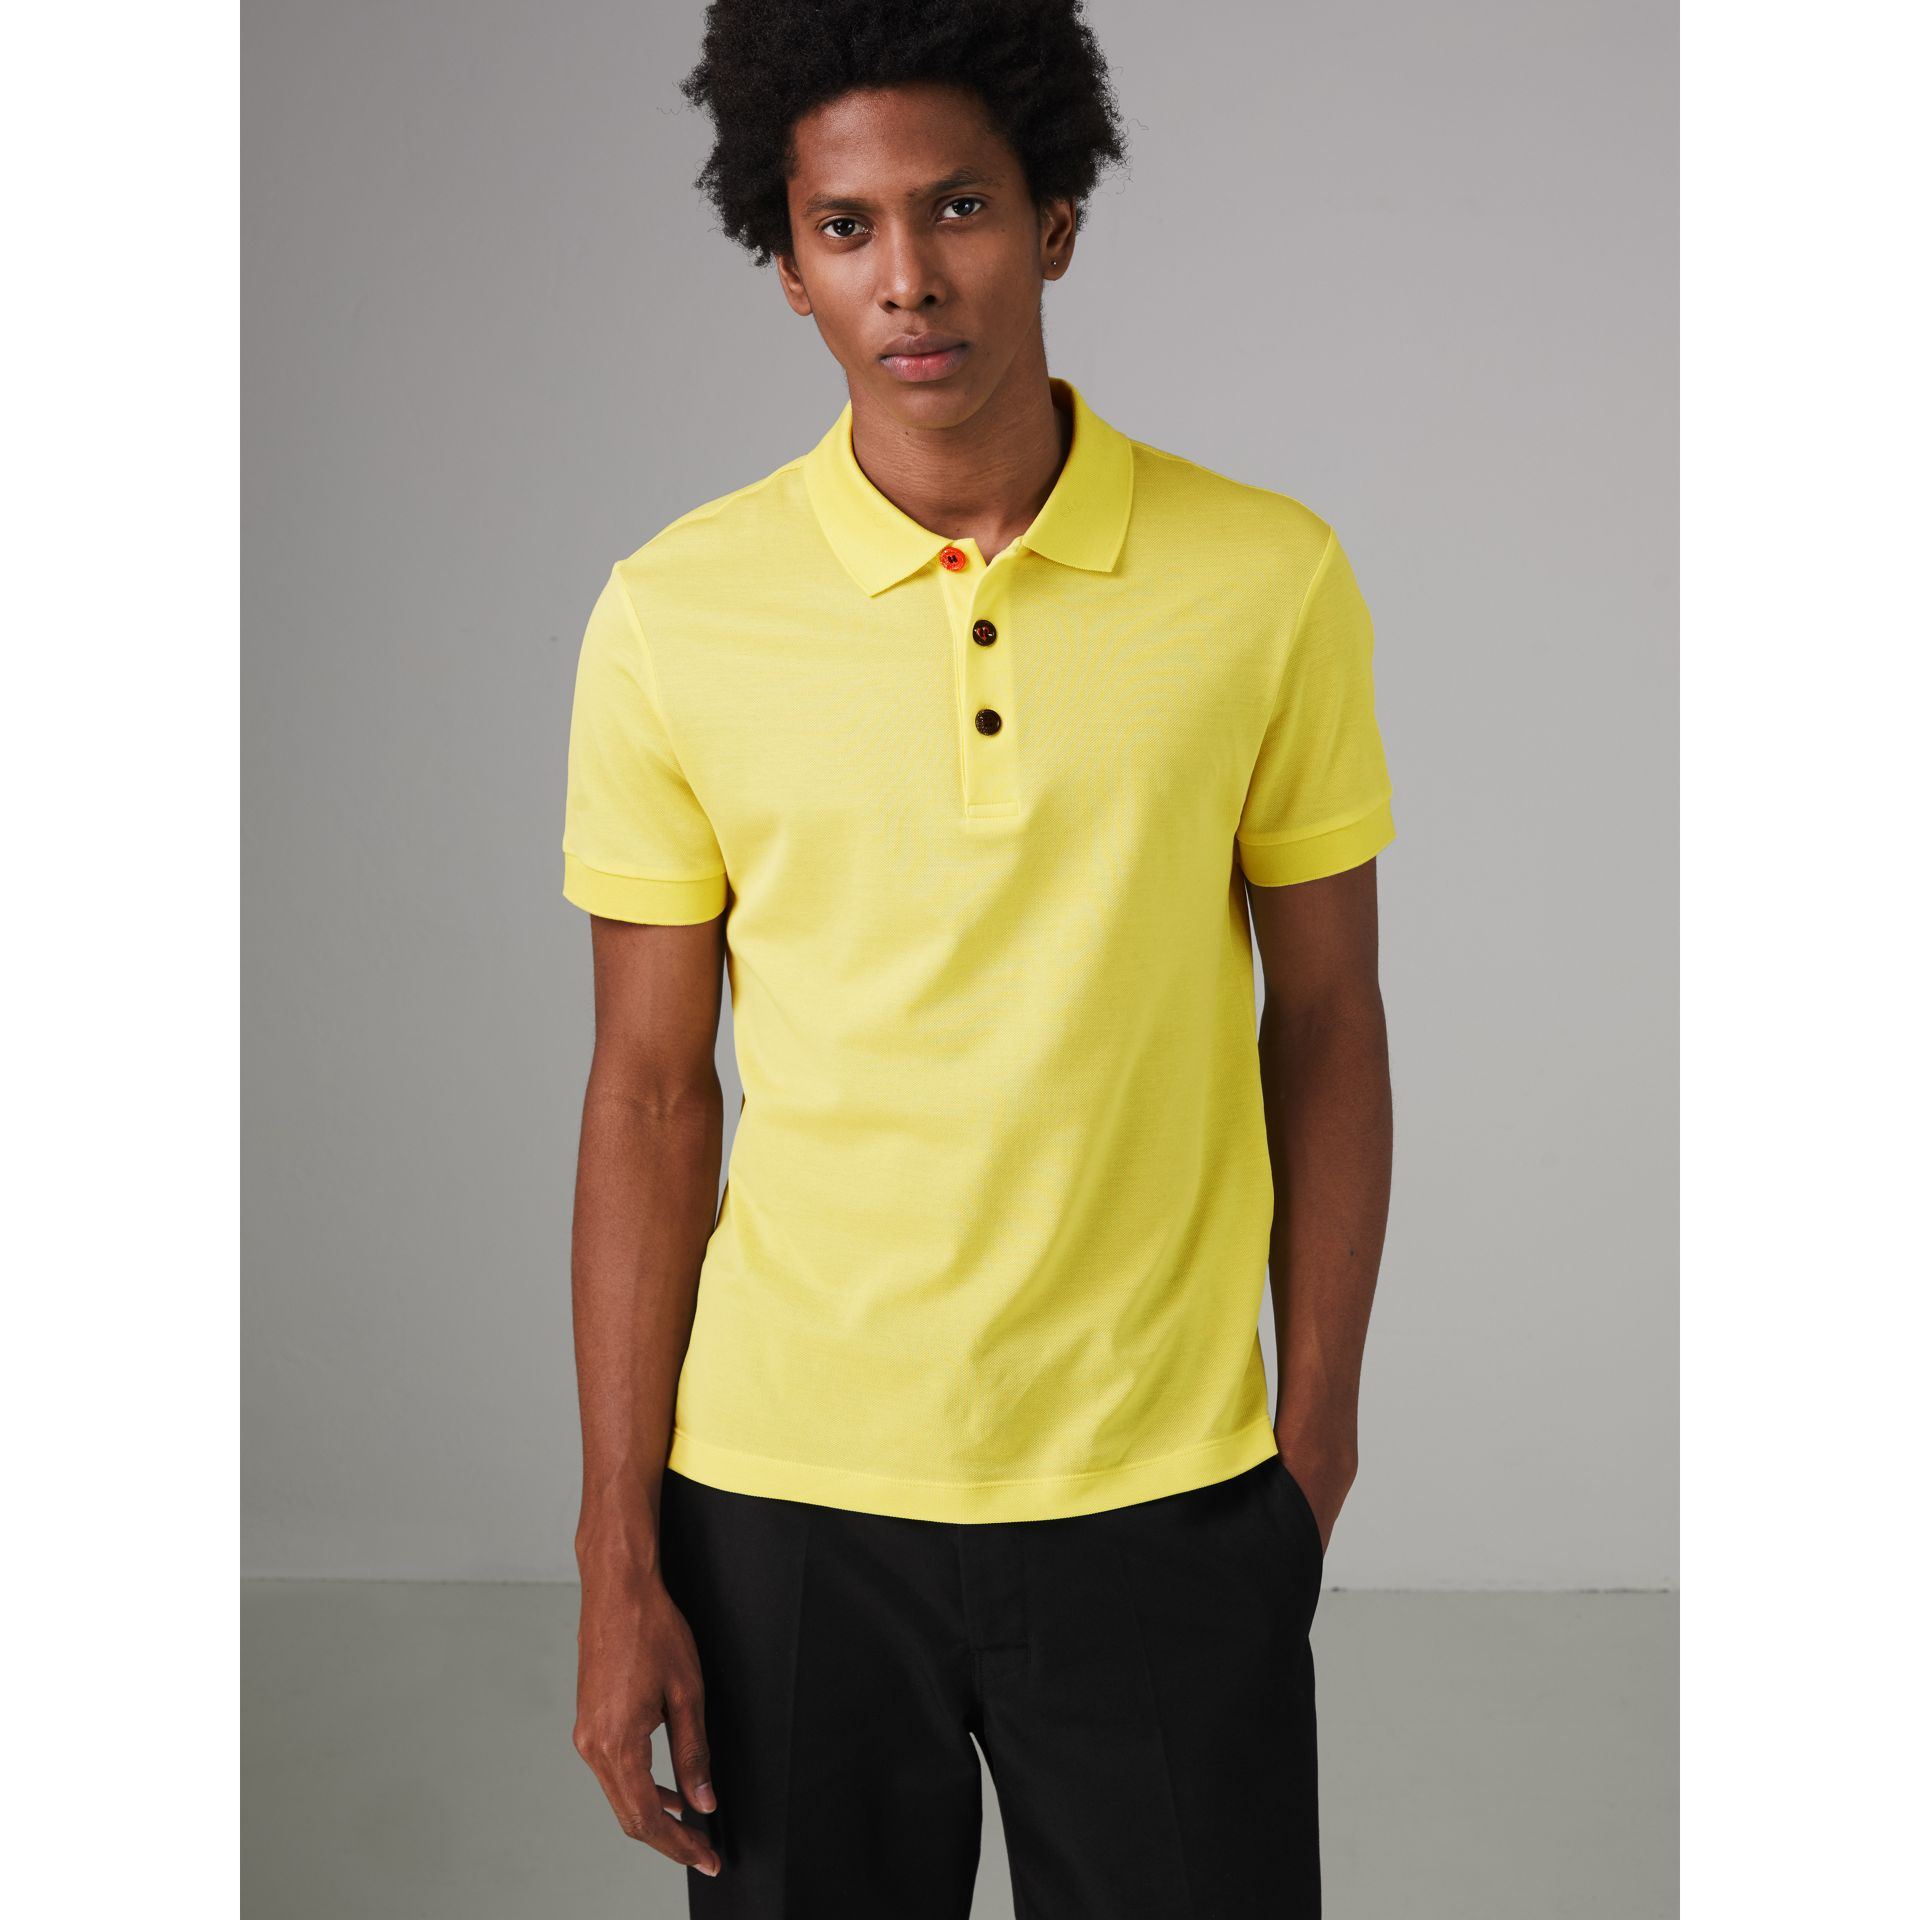 Painted Button Cotton Piqué Polo Shirt in Vibrant Lemon - Men | Burberry United Kingdom - gallery image 4